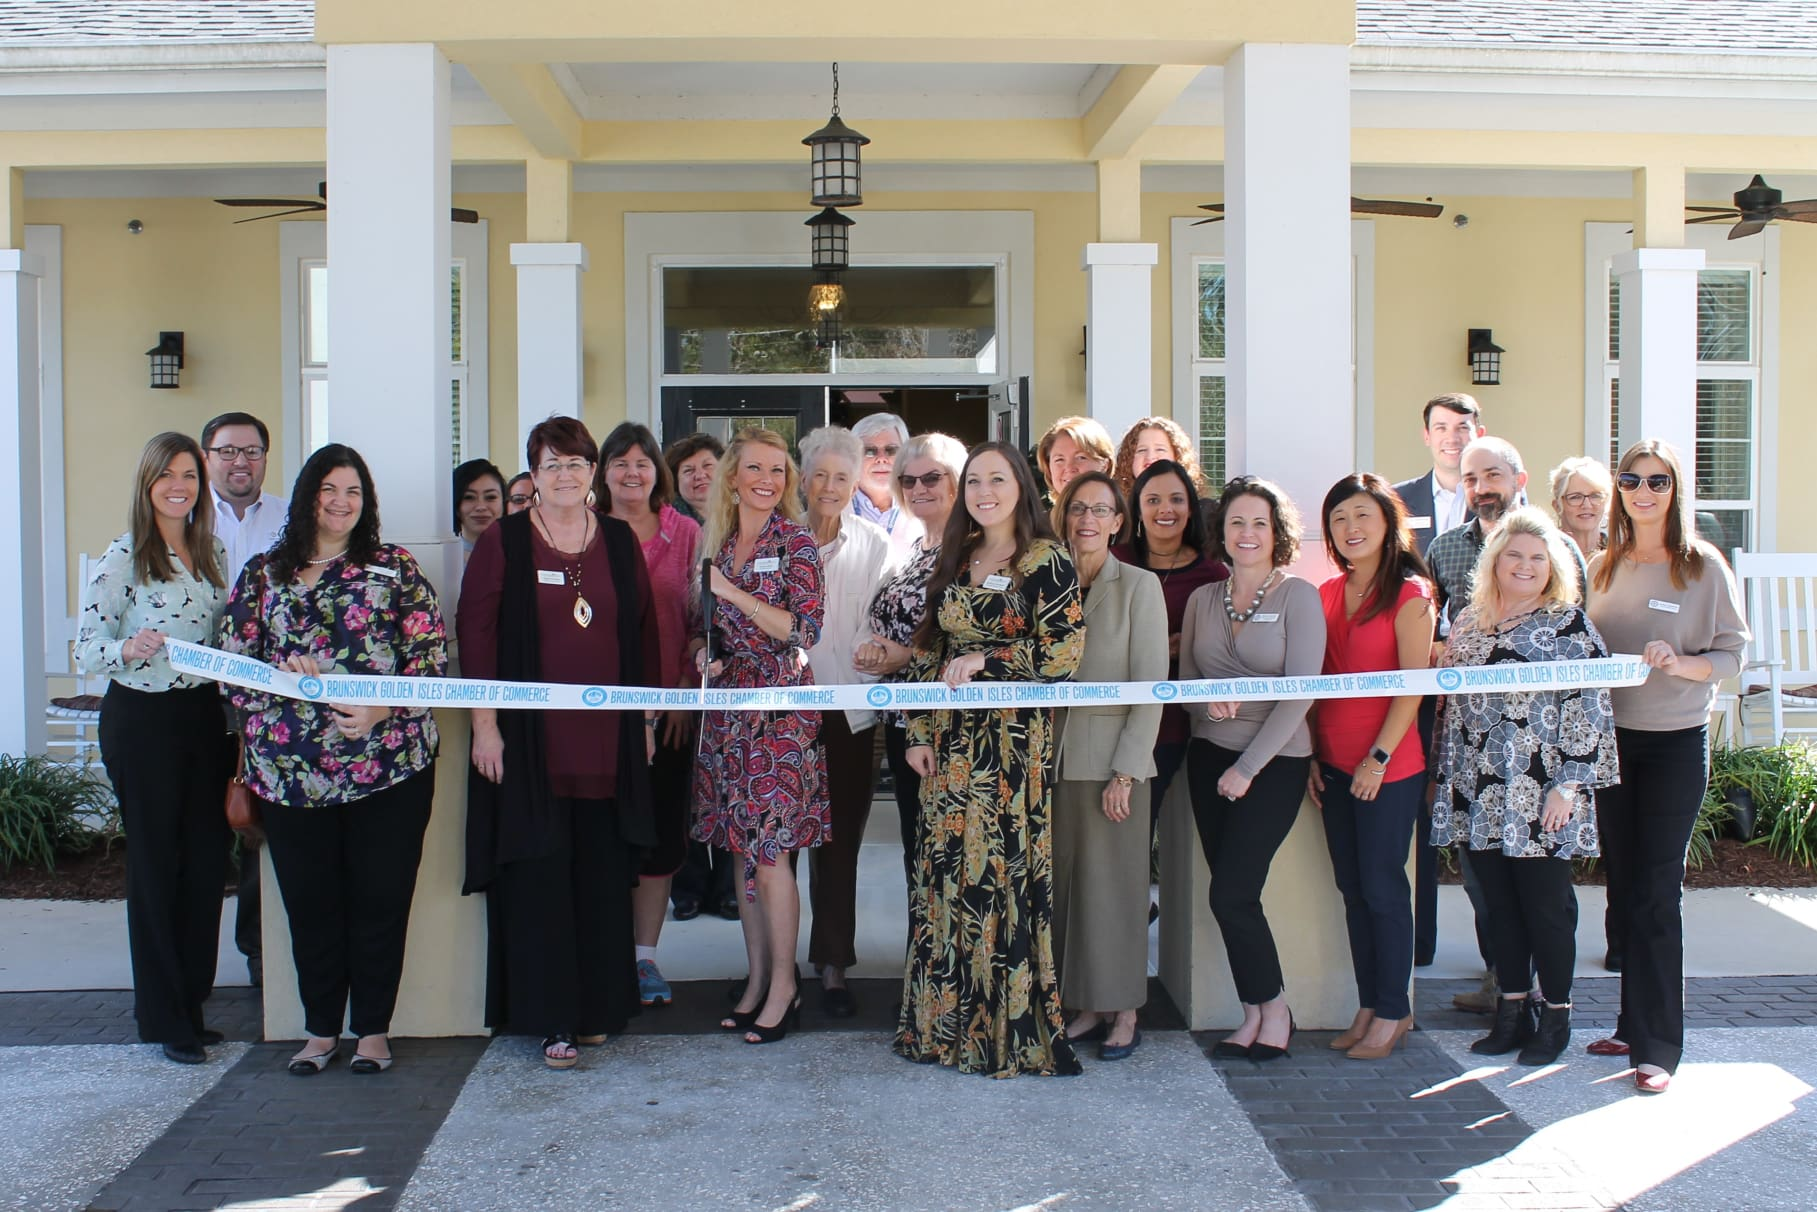 addington-place-ribbon-cutting-11-17.JPG-w1817.jpg